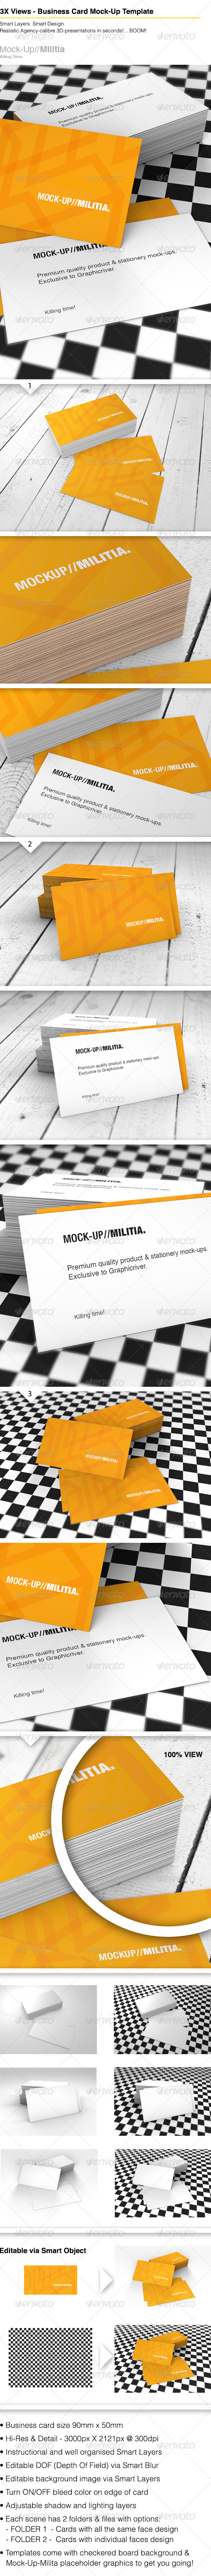 GraphicRiver Business Card Mock-Up Template With Various Scenes 6330528